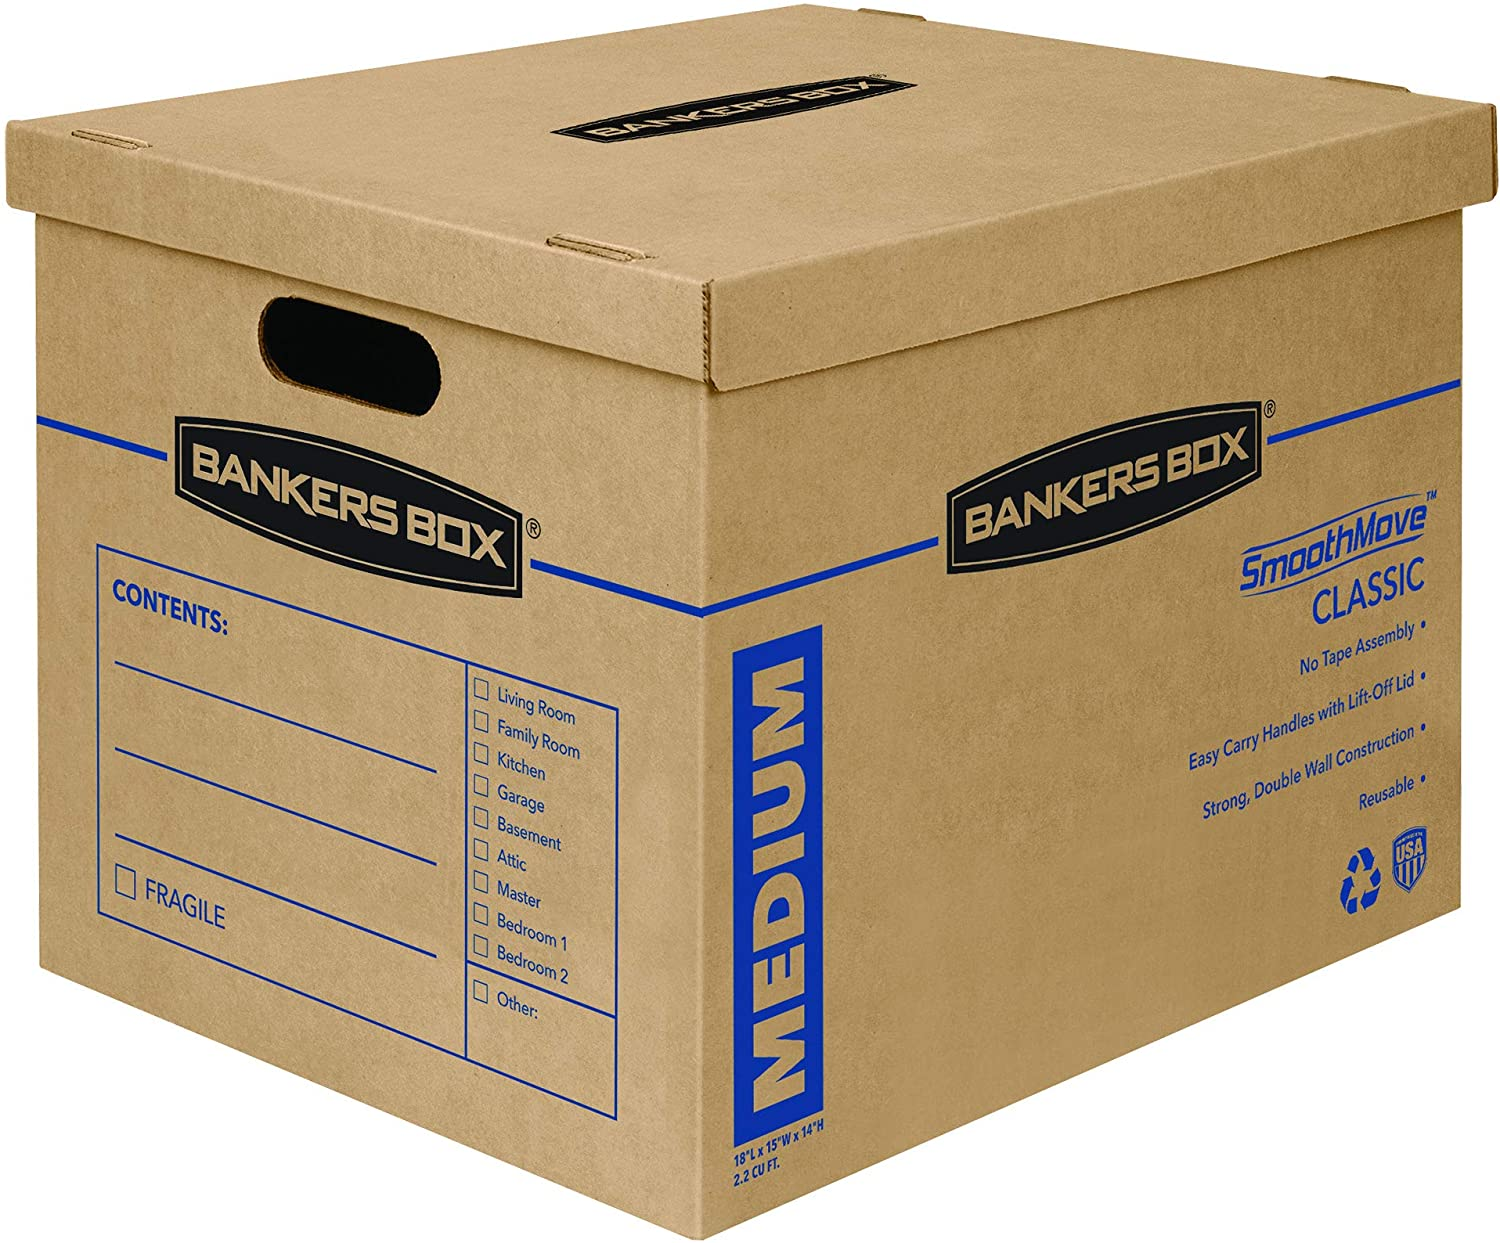 Reservation Bankers Box SmoothMove Classic Max 65% OFF Moving Assembly Boxes Tape-Free